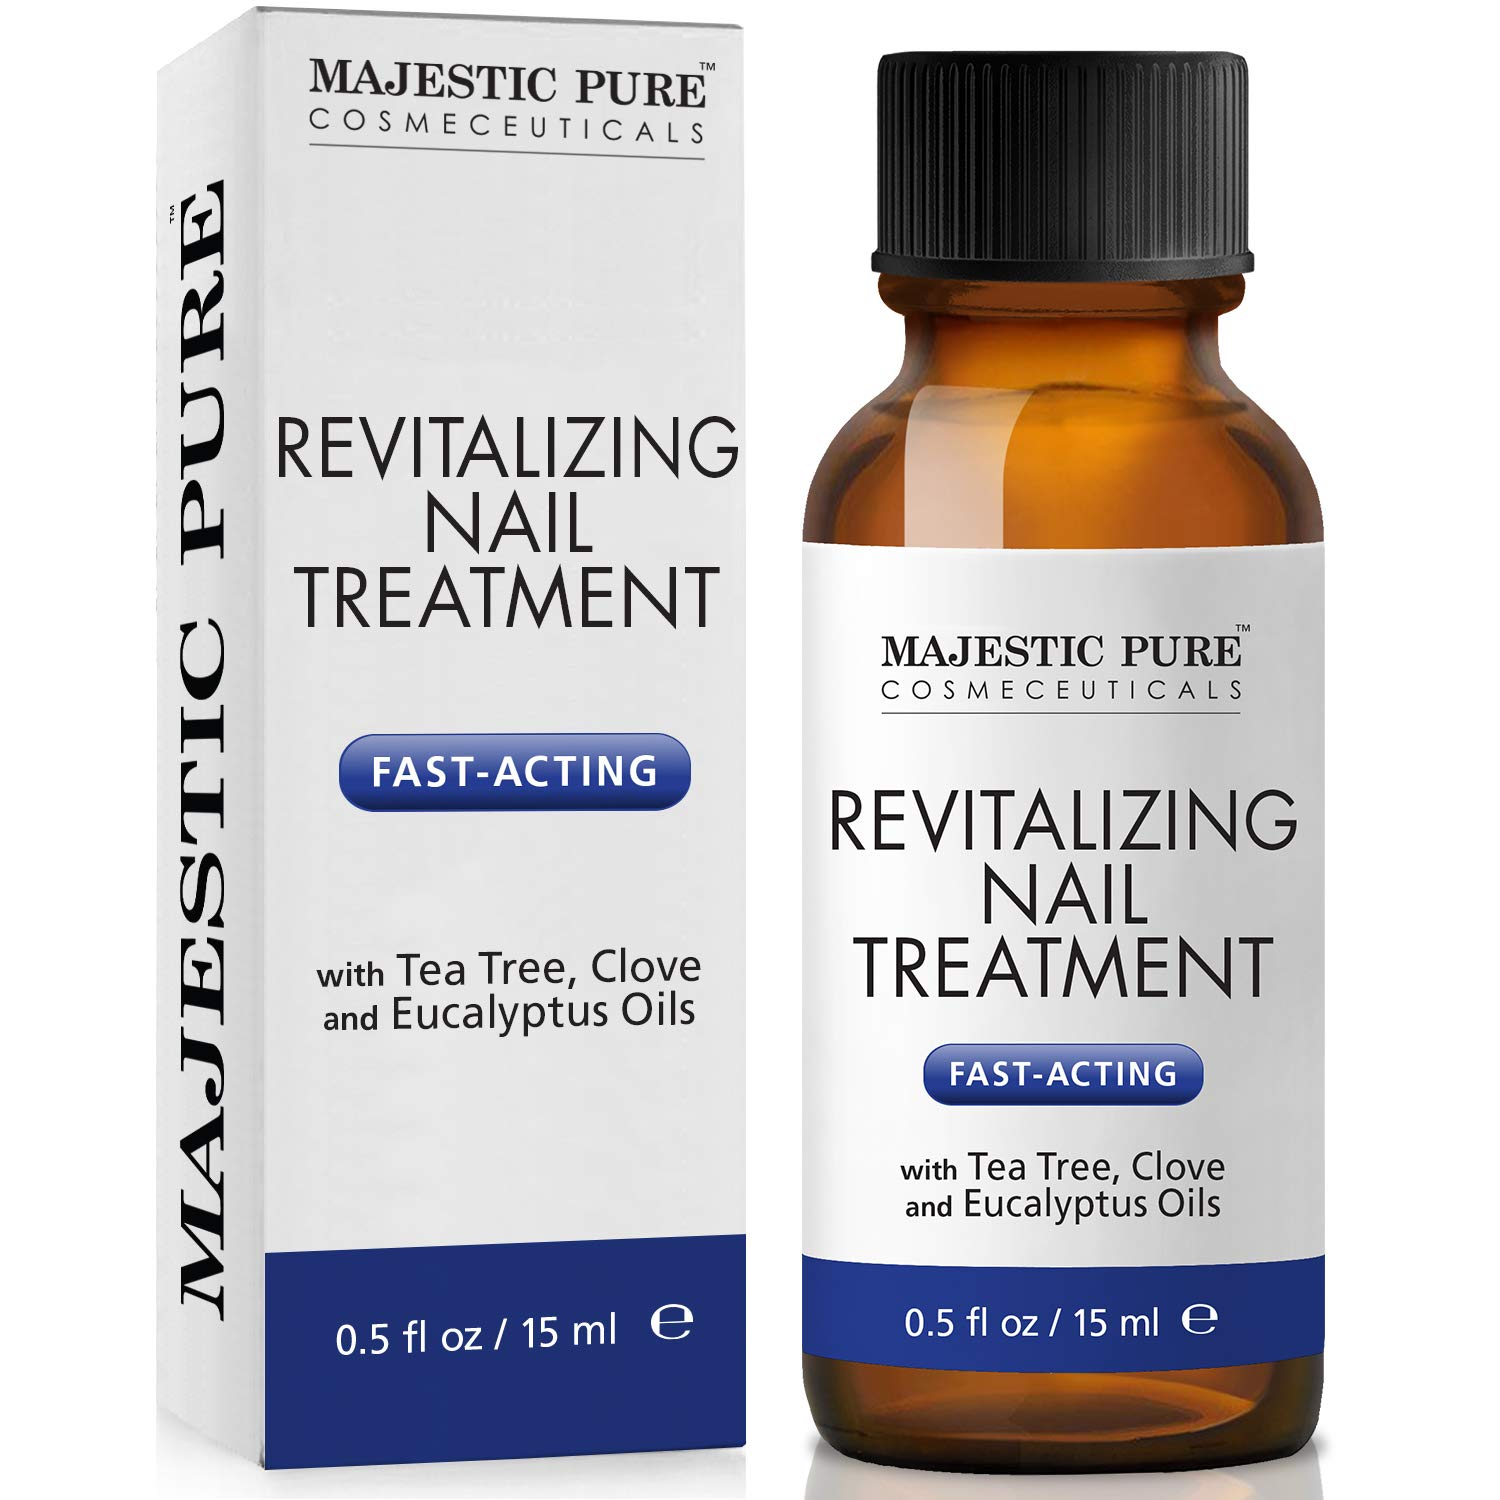 MAJESTIC PURE Natural Nail Treatment - Fights Toenail Fungus with Tea Tree, Clove, and Eucalyptus Oils - Natural Remedy for Damaged Toe Nails and Foot Health - 0.5 fl oz by Majestic Pure